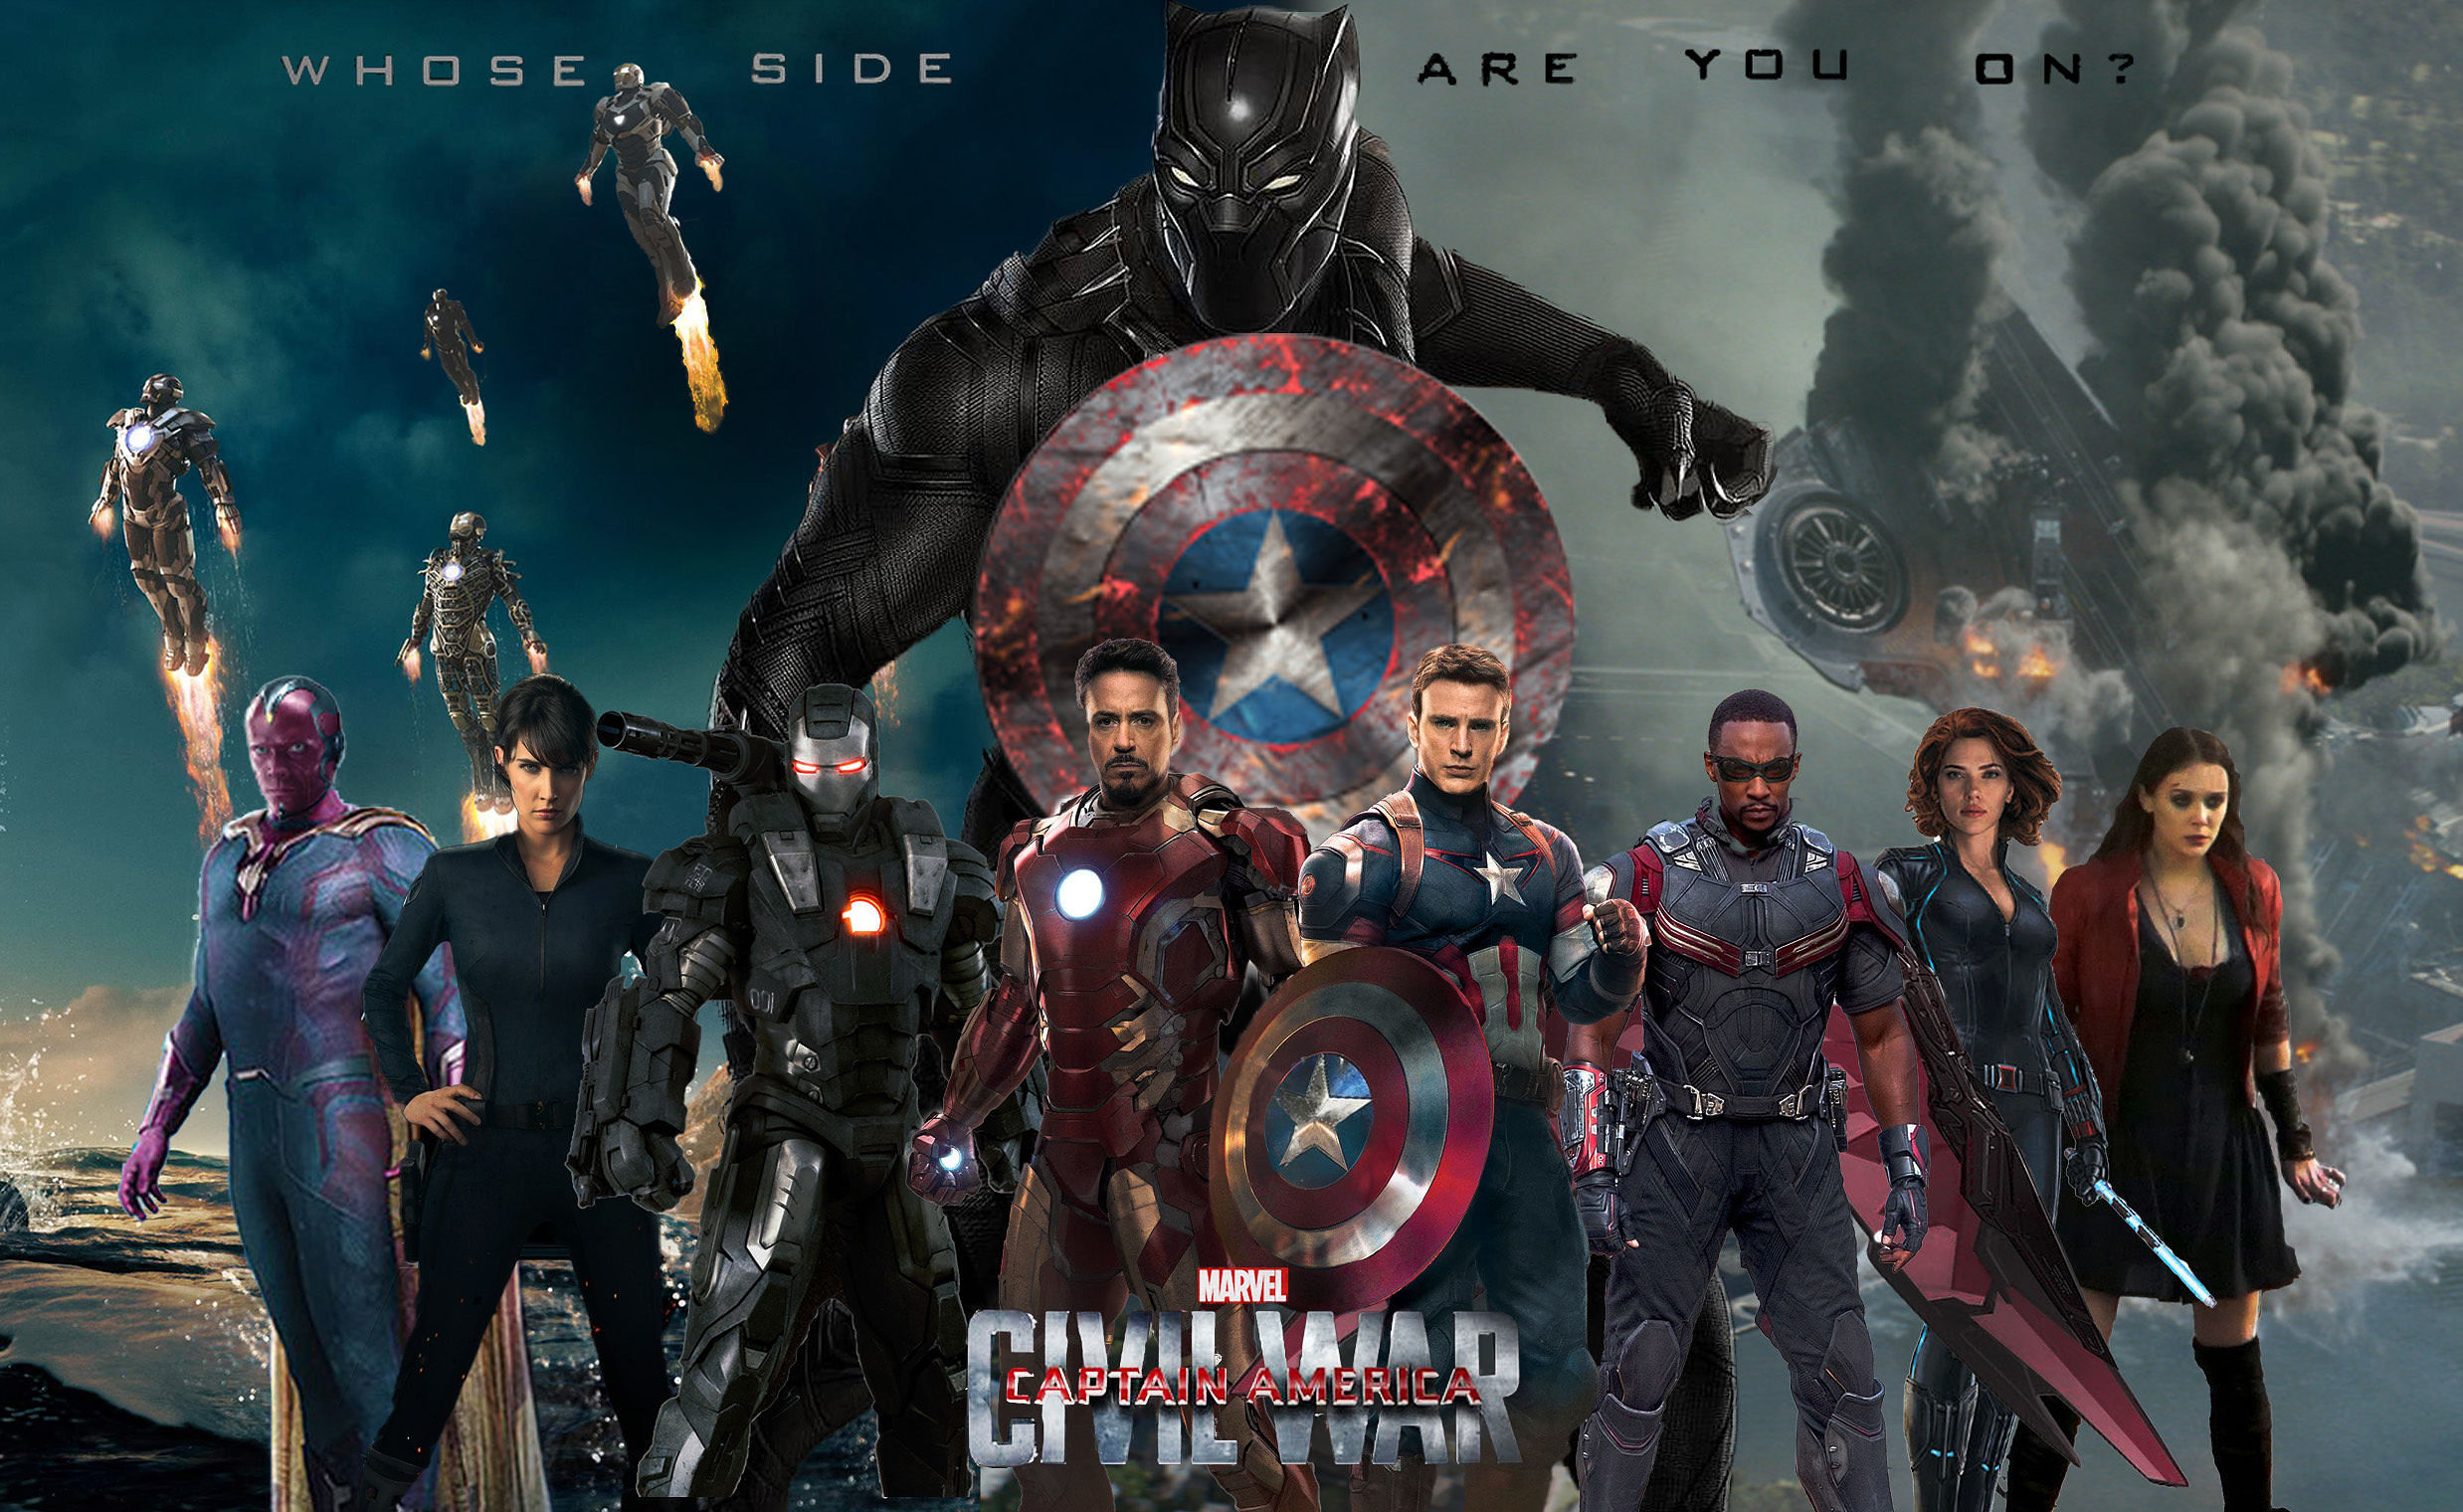 image of superheroes from Marvel comics